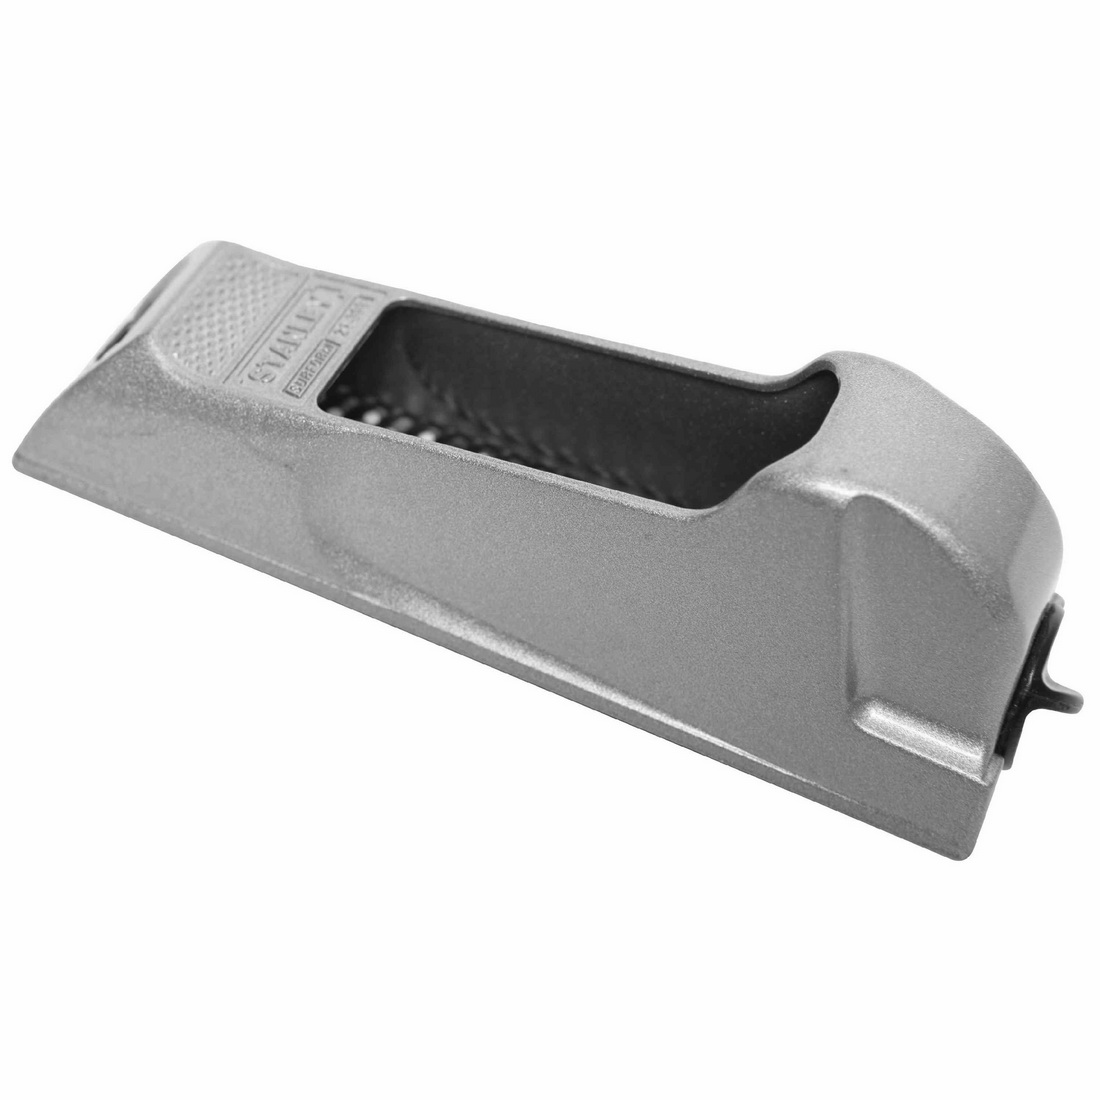 Surform Block Pocket Plane 140mm